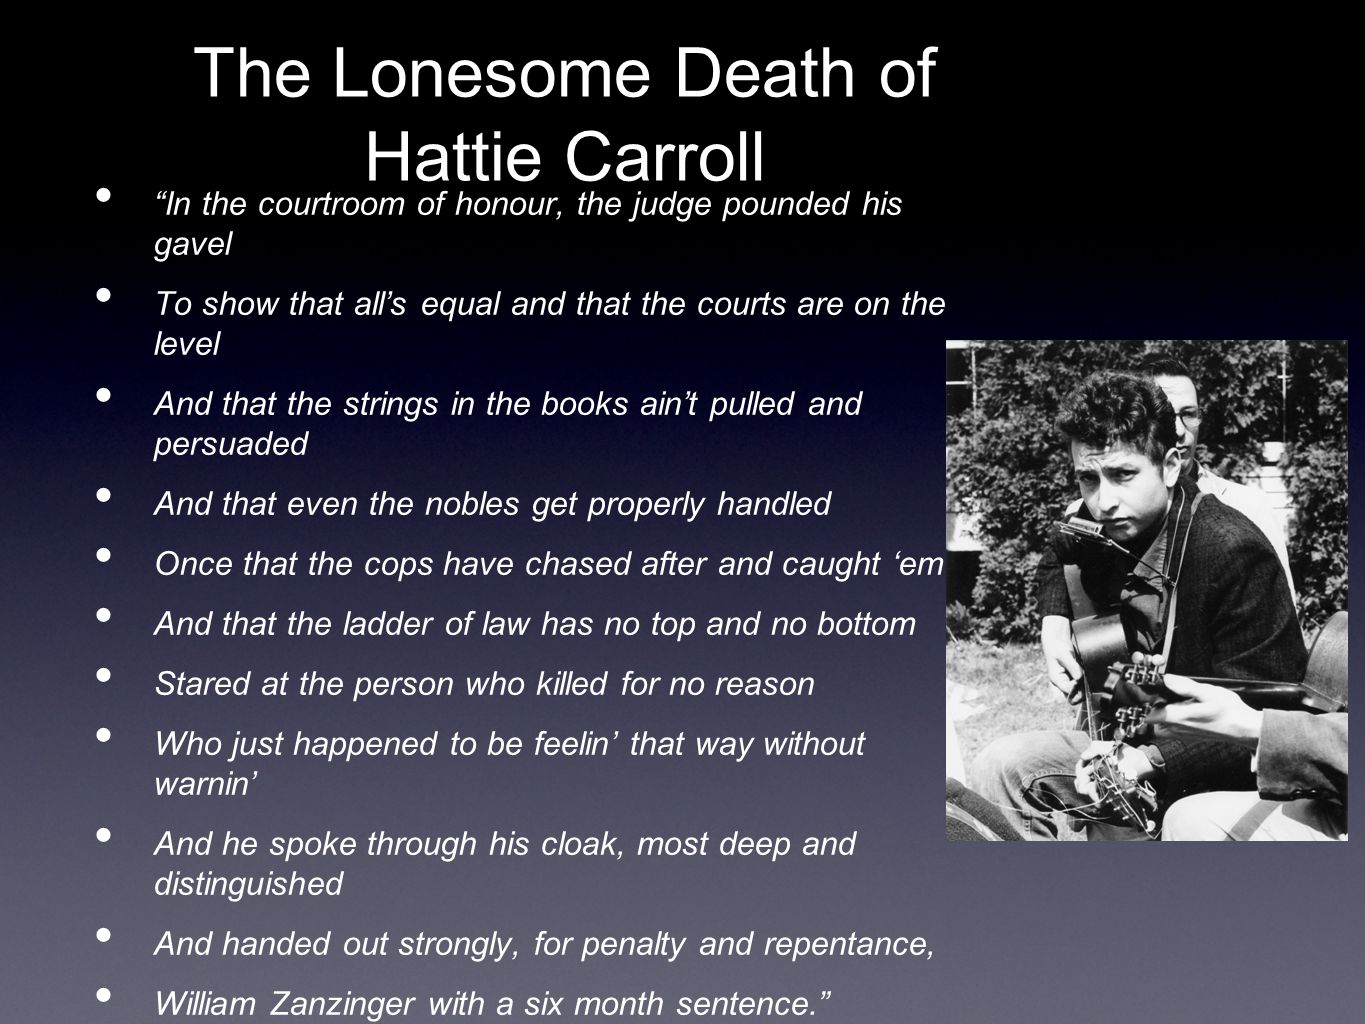 The Lonesome Death of Hattie Carroll In the courtroom of honour, the judge pounded his gavel To show that all's equal and that the courts are on the level And that the strings in the books ain't pulled and persuaded And that even the nobles get properly handled Once that the cops have chased after and caught 'em And that the ladder of law has no top and no bottom Stared at the person who killed for no reason Who just happened to be feelin' that way without warnin' And he spoke through his cloak, most deep and distinguished And handed out strongly, for penalty and repentance, William Zanzinger with a six month sentence.